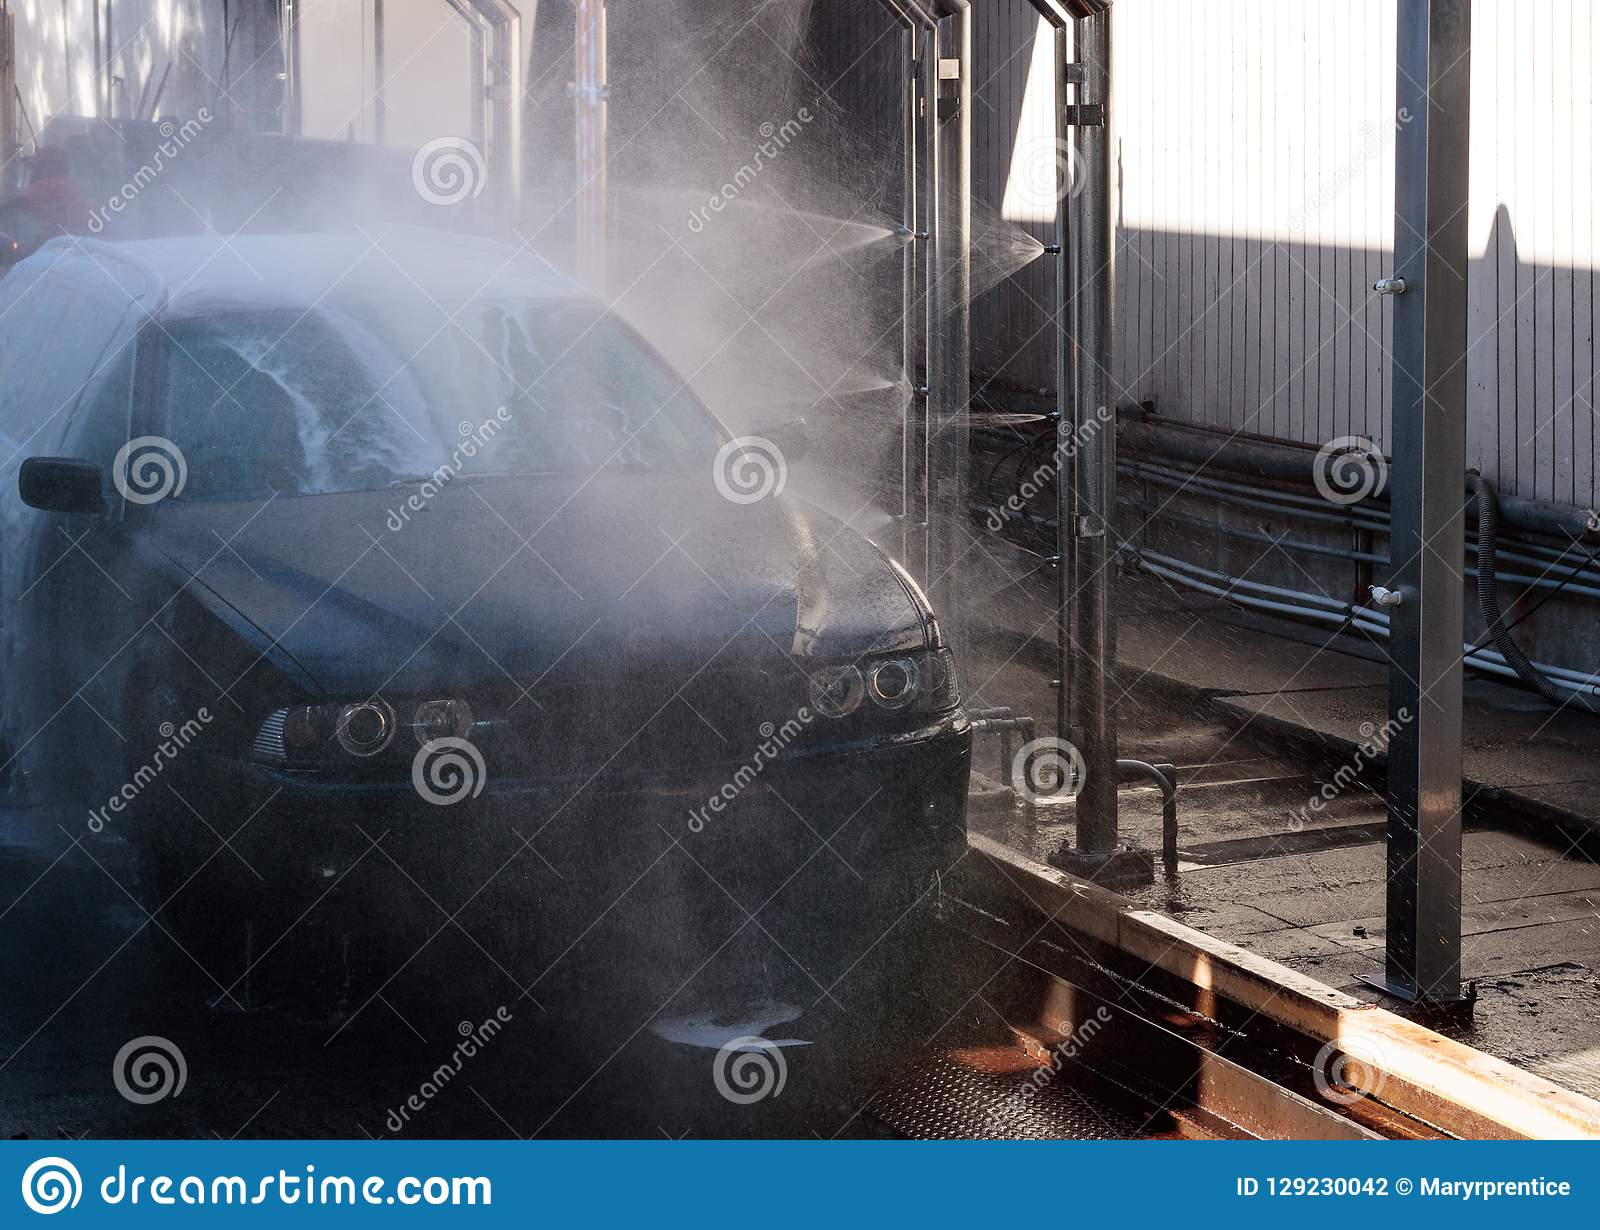 Spray Car Wash >> Close Up Of Car Being Spray Washed In An Automated Car Wash